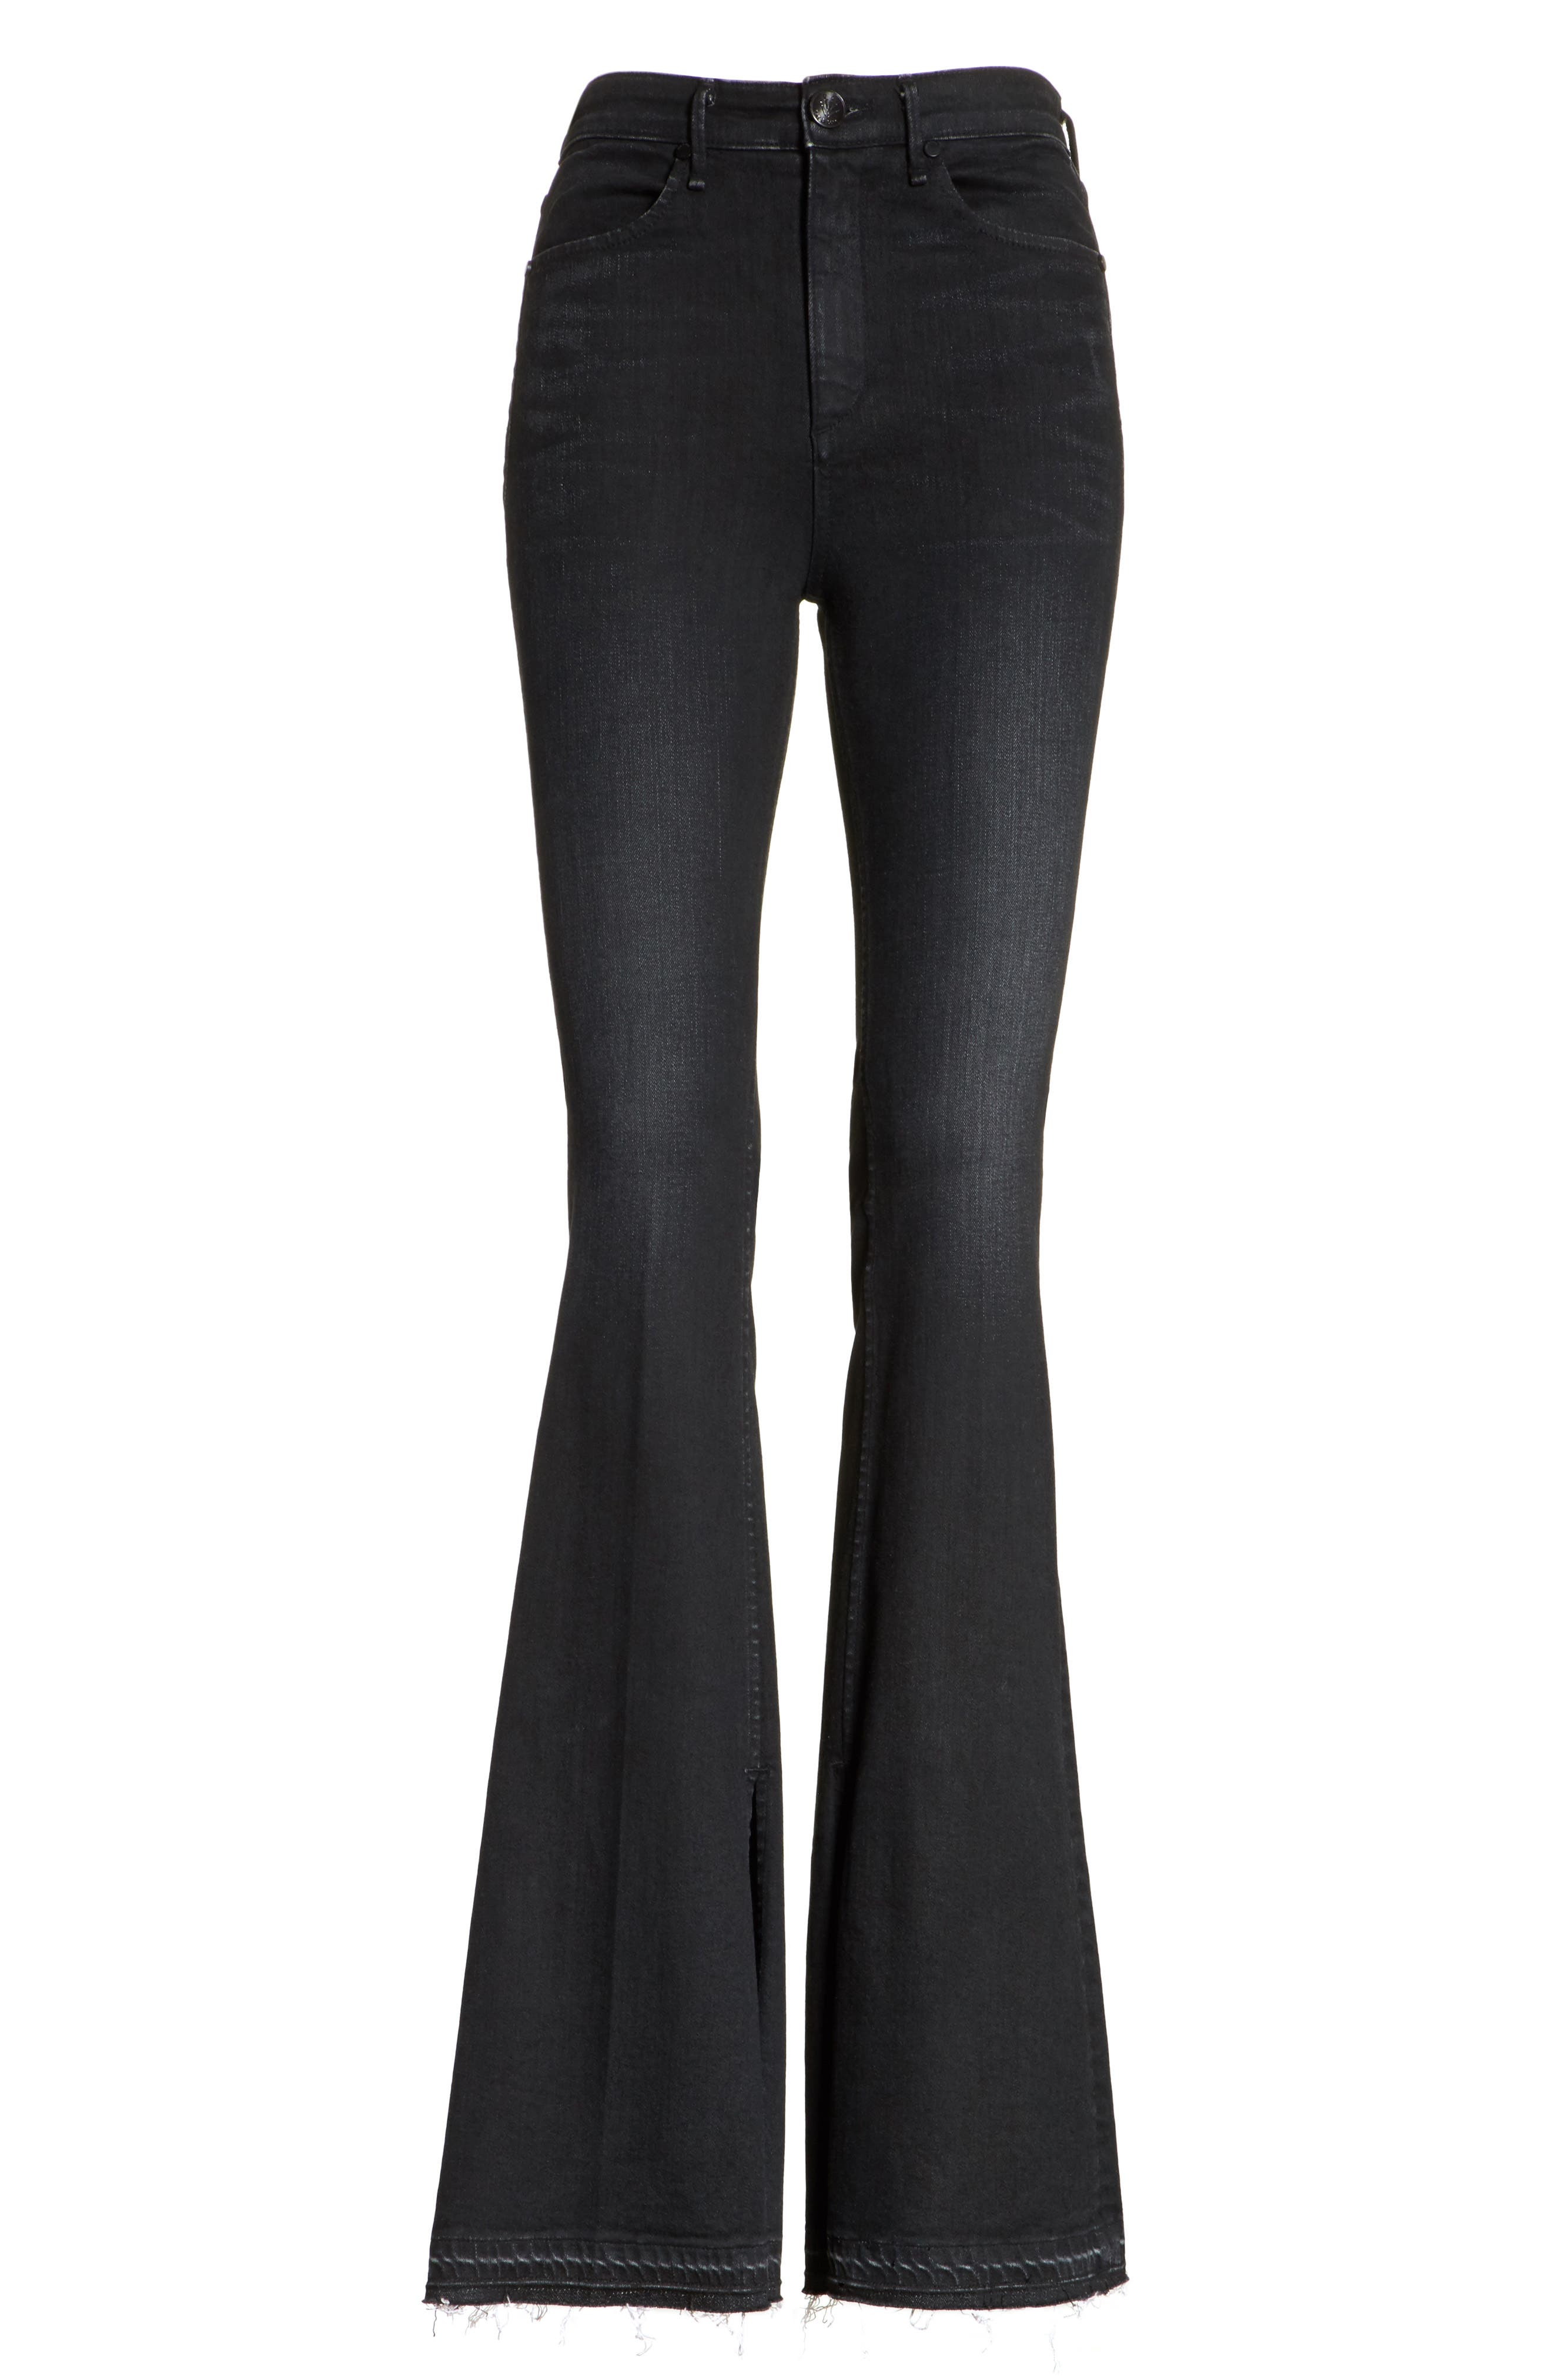 Bella Flare Jeans,                             Alternate thumbnail 6, color,                             001